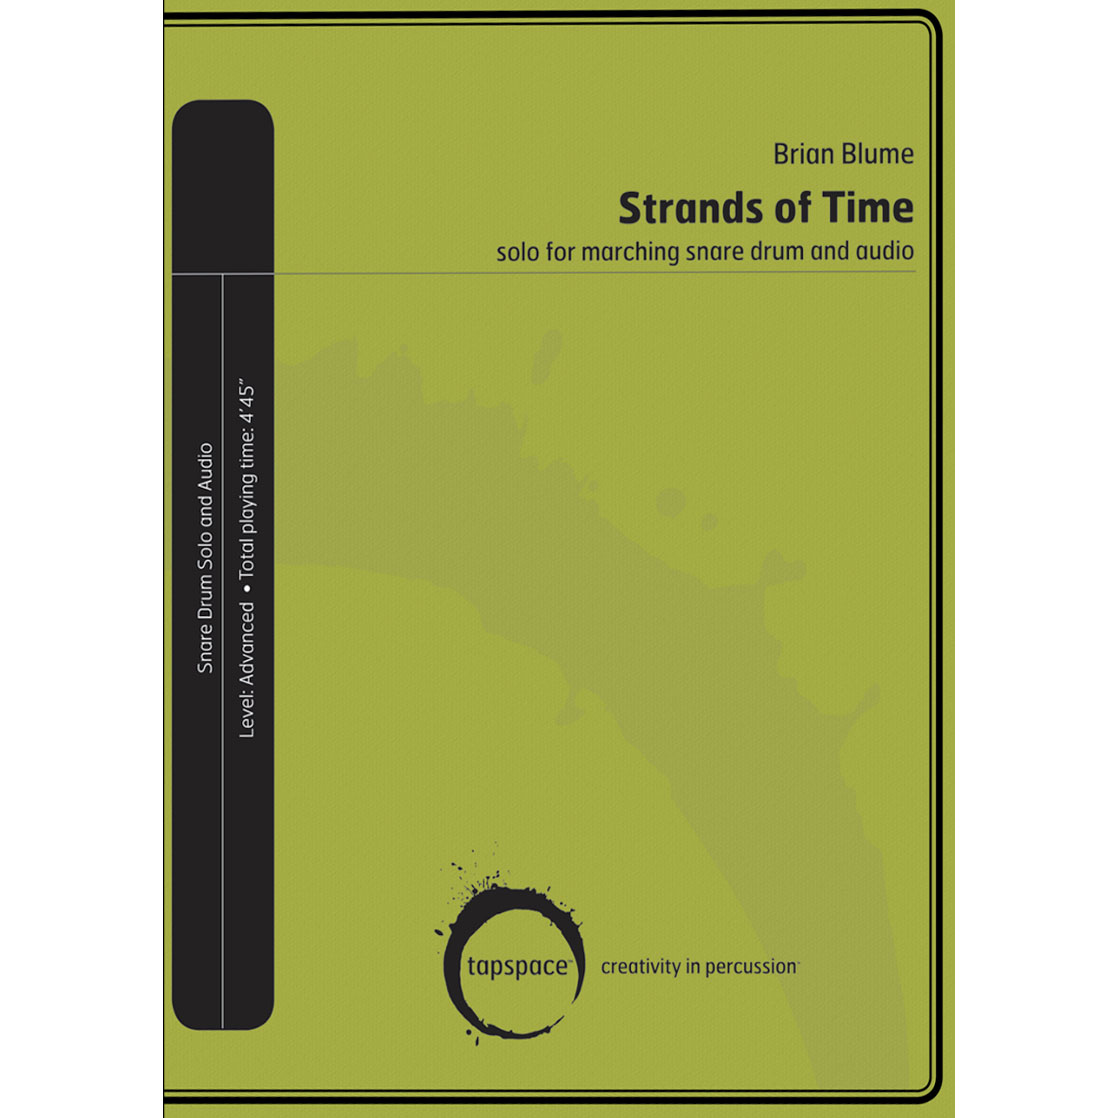 Strands of Time by Brian Blume